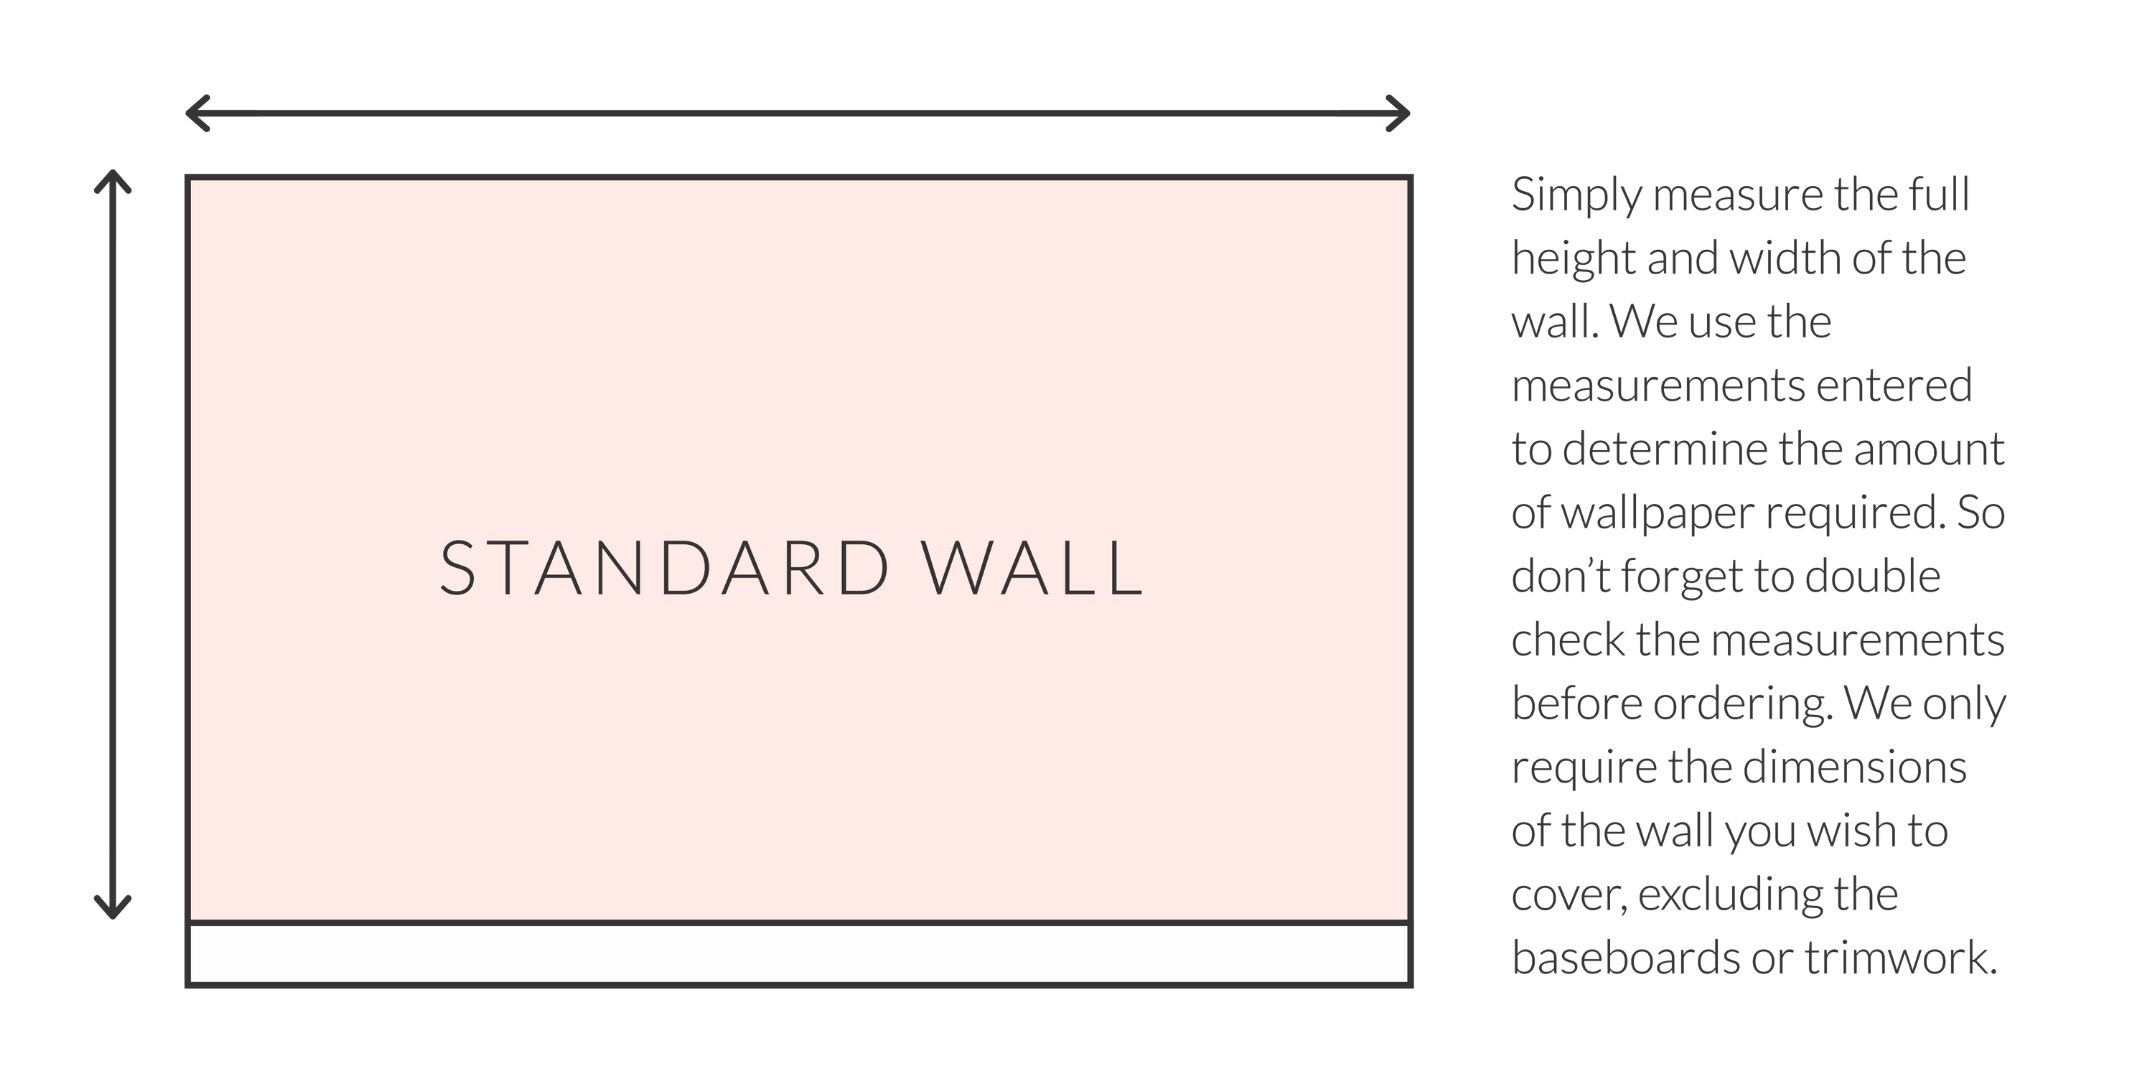 Hello Sticky - Peel & Stick Removable Wallpaper FAQs - Measuring Guide - Standard Wall